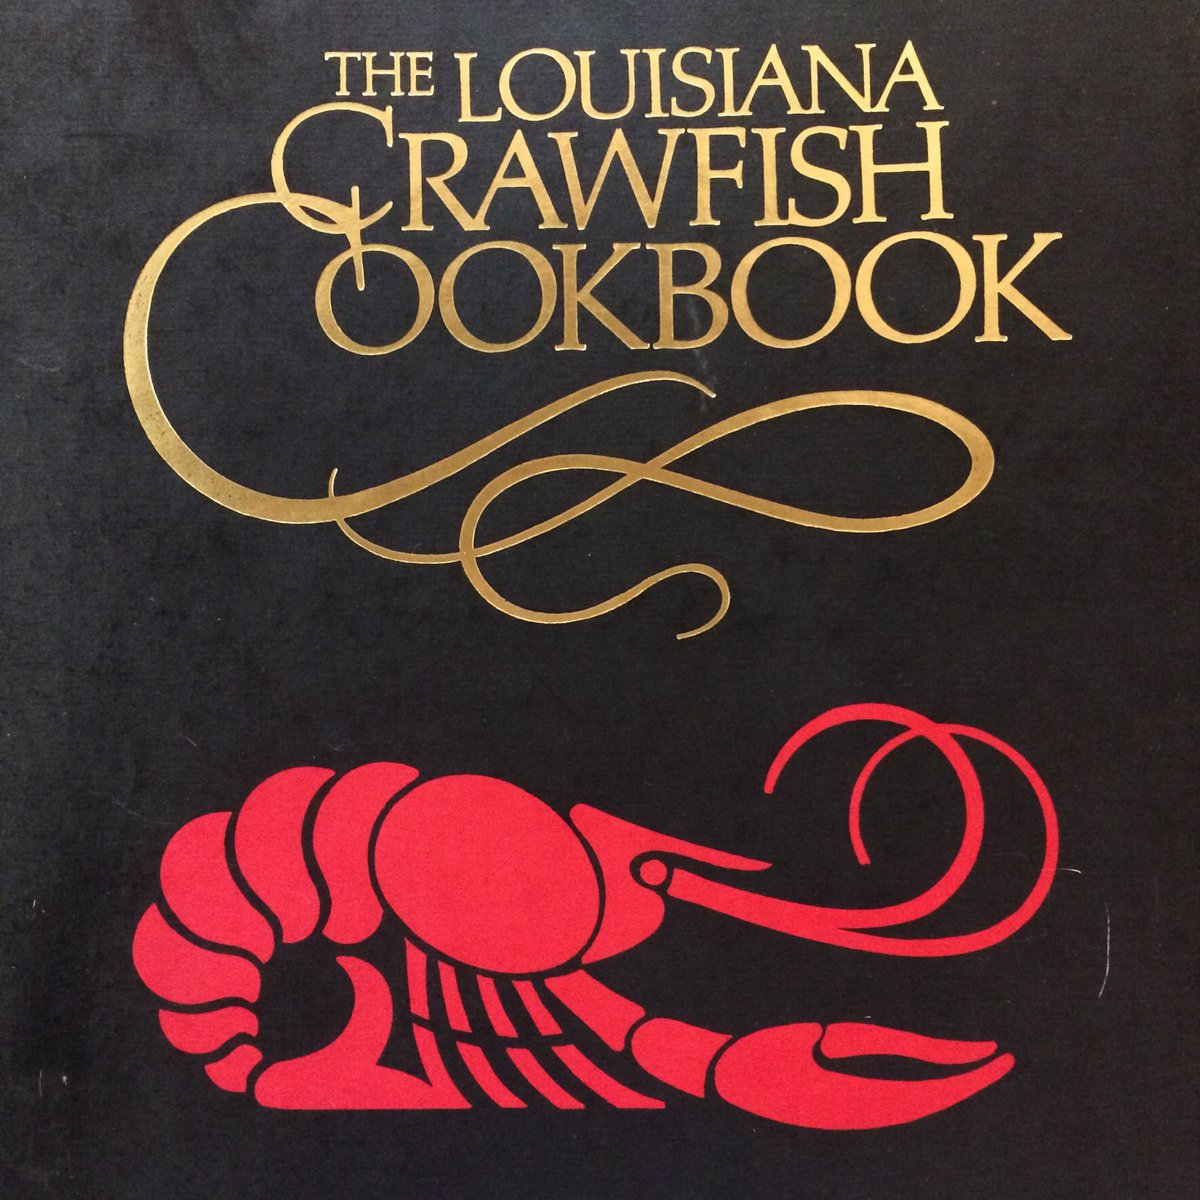 We are a peaceful football free zone. We will happily serve you a giant platter of boiled crawfish and let you forget it's even happening! Take a load off and get crackin'! #plaqueminelock